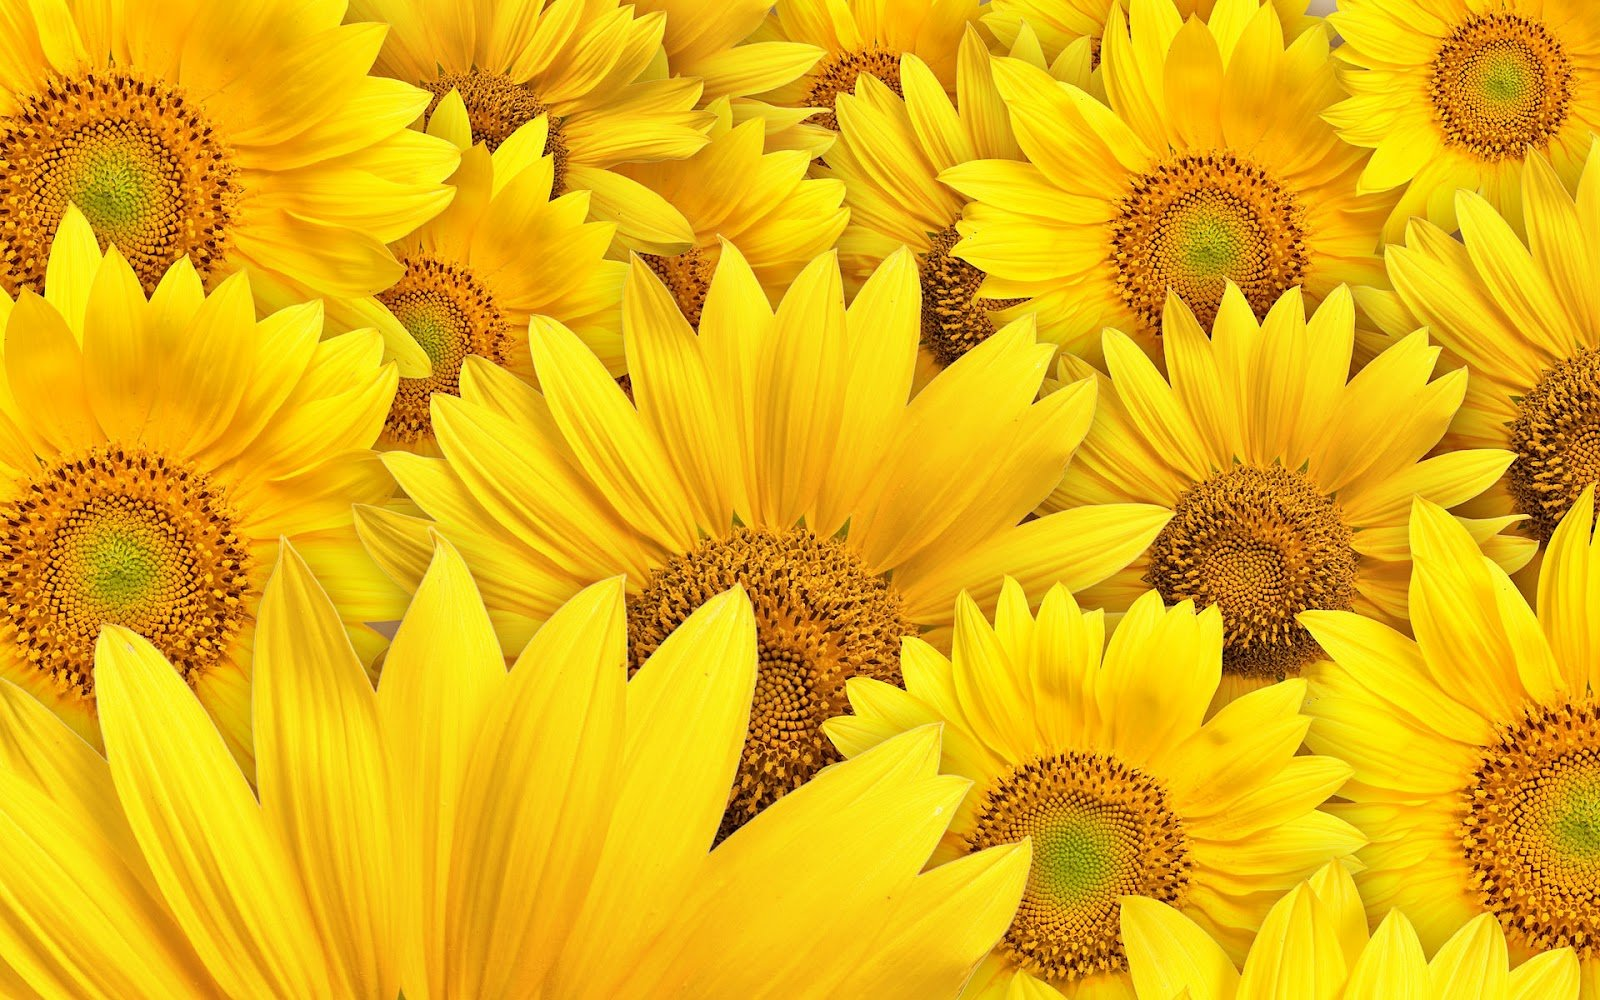 Sunflower Wallpapers Desktop wallpapers Desktop HD Wallpapers 1600x1000